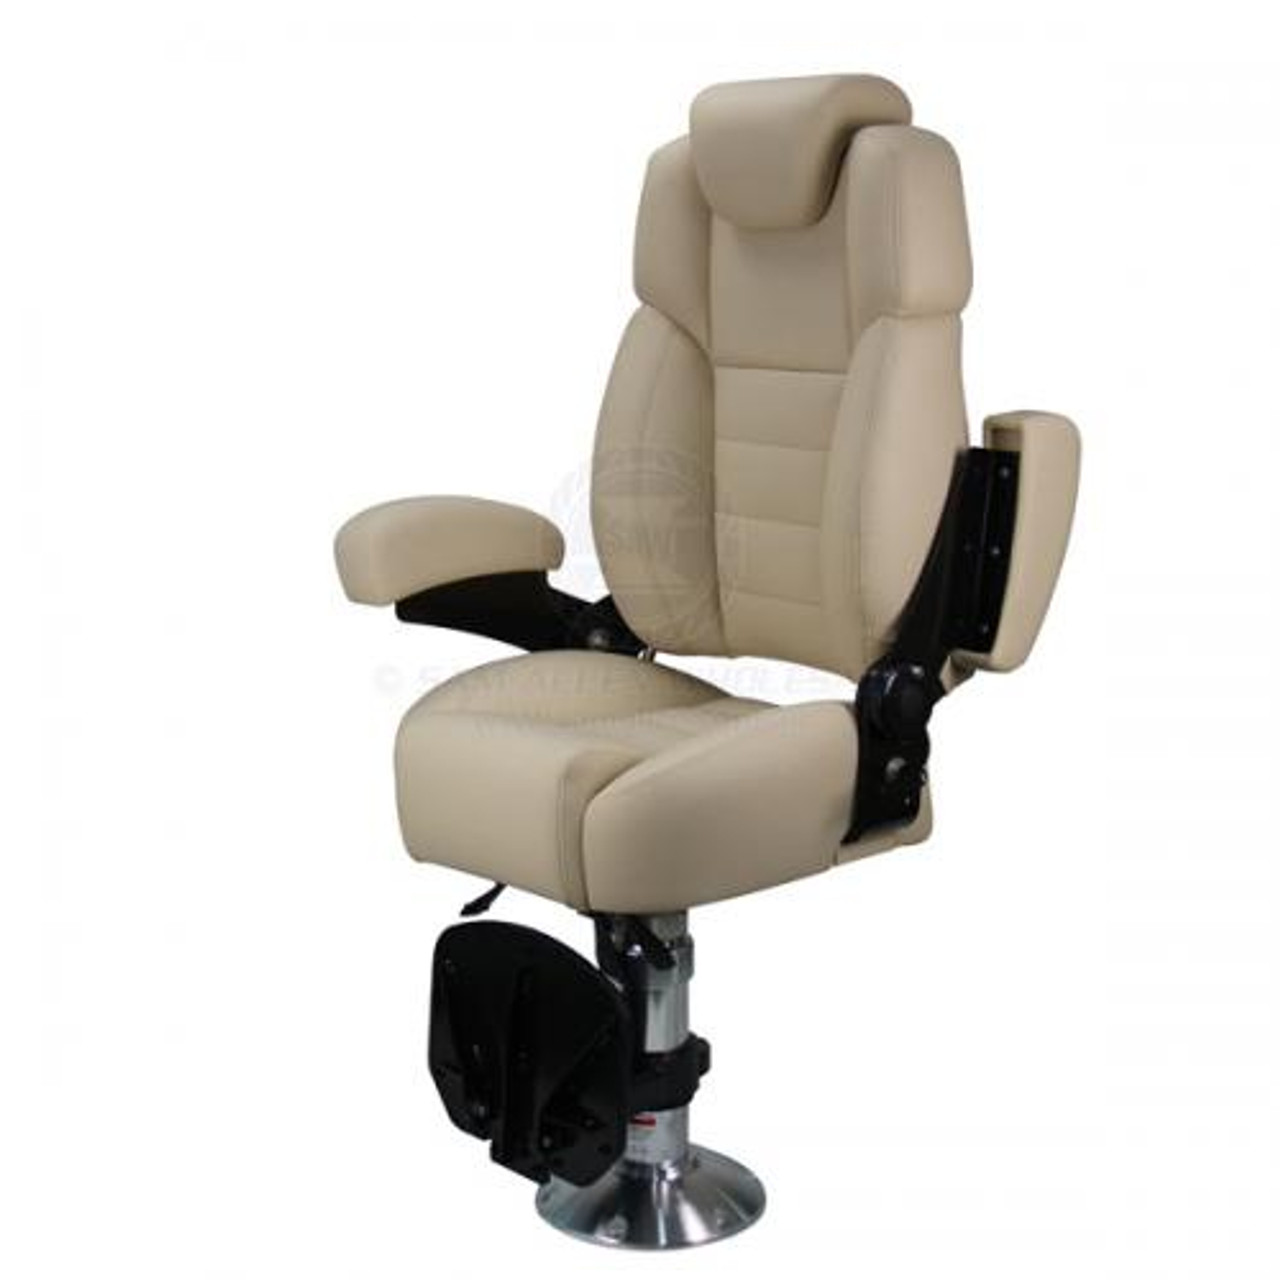 Relaxn Voyager Seat with adjustable arm rests